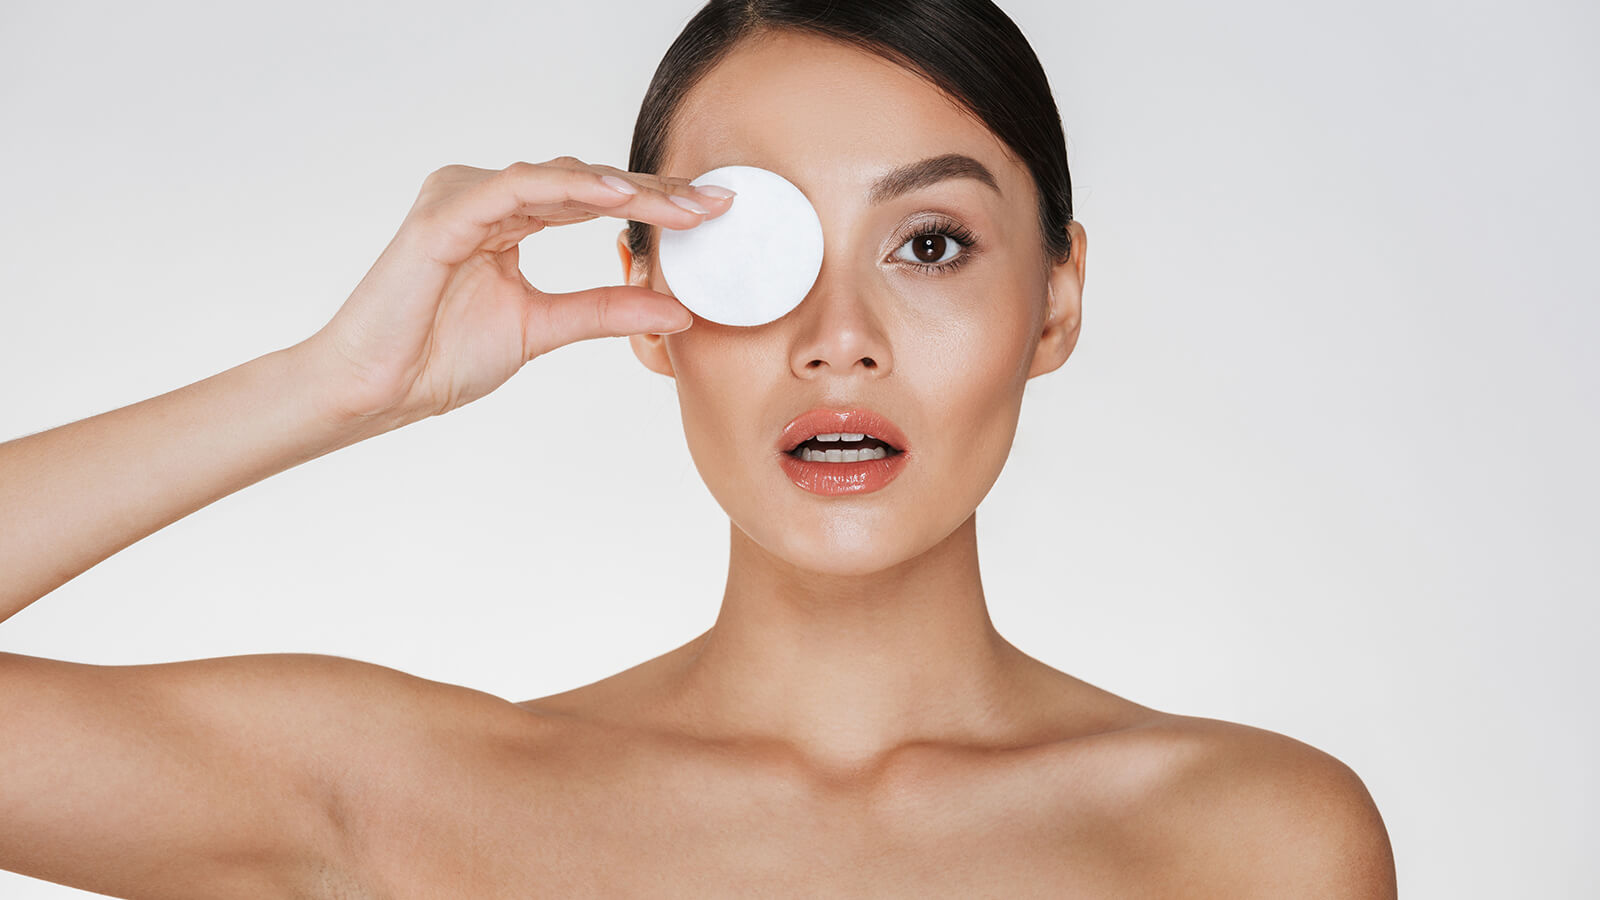 How to remove eye makeup without hurting your eyes?